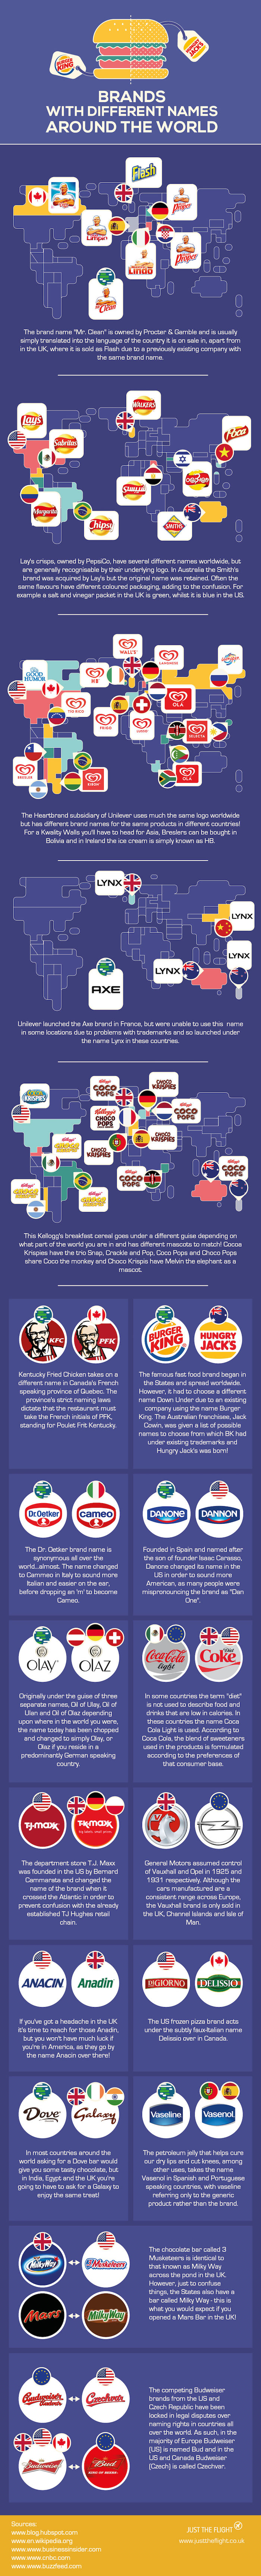 brand names around world infographic